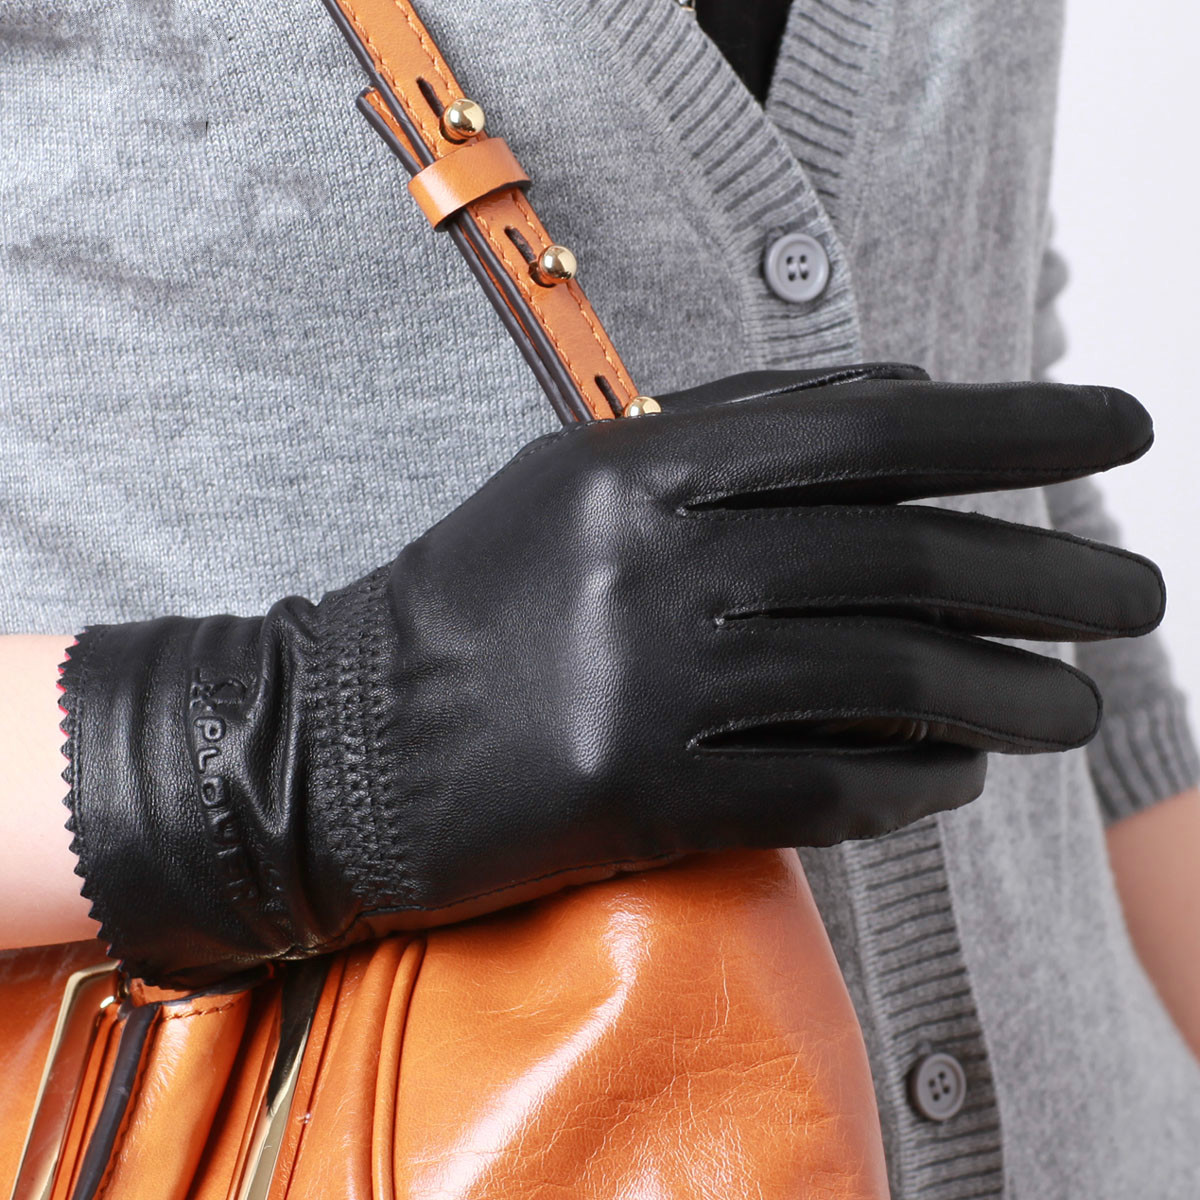 Womens leather gloves reviews - Genuine Leather Gloves Fashion Women Warm Winter Gloves Long Wrist 100 Sheepskin Natural Leather Guantes Black Brown M L